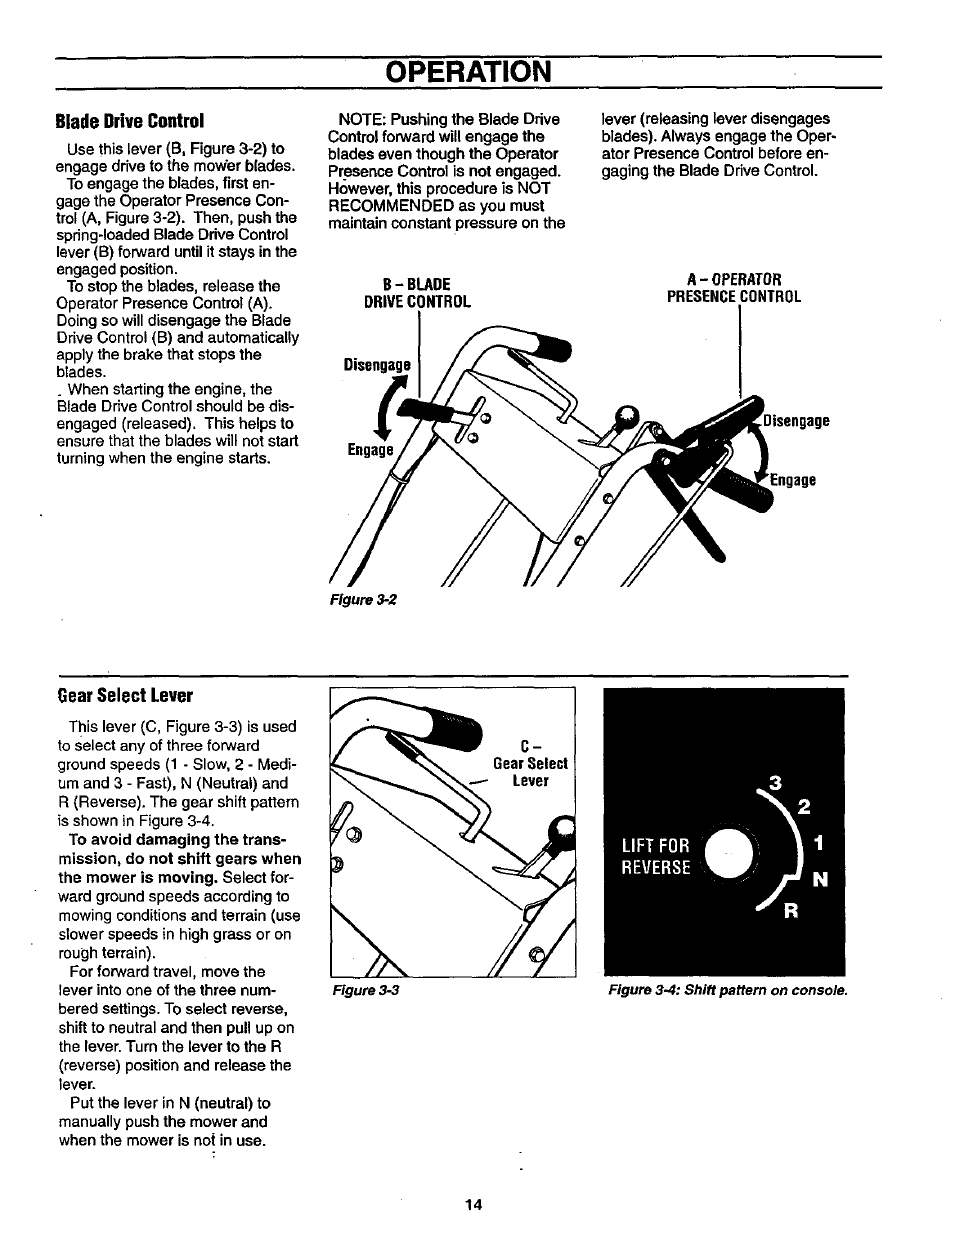 Blade drive control, Gear select lever, Operation